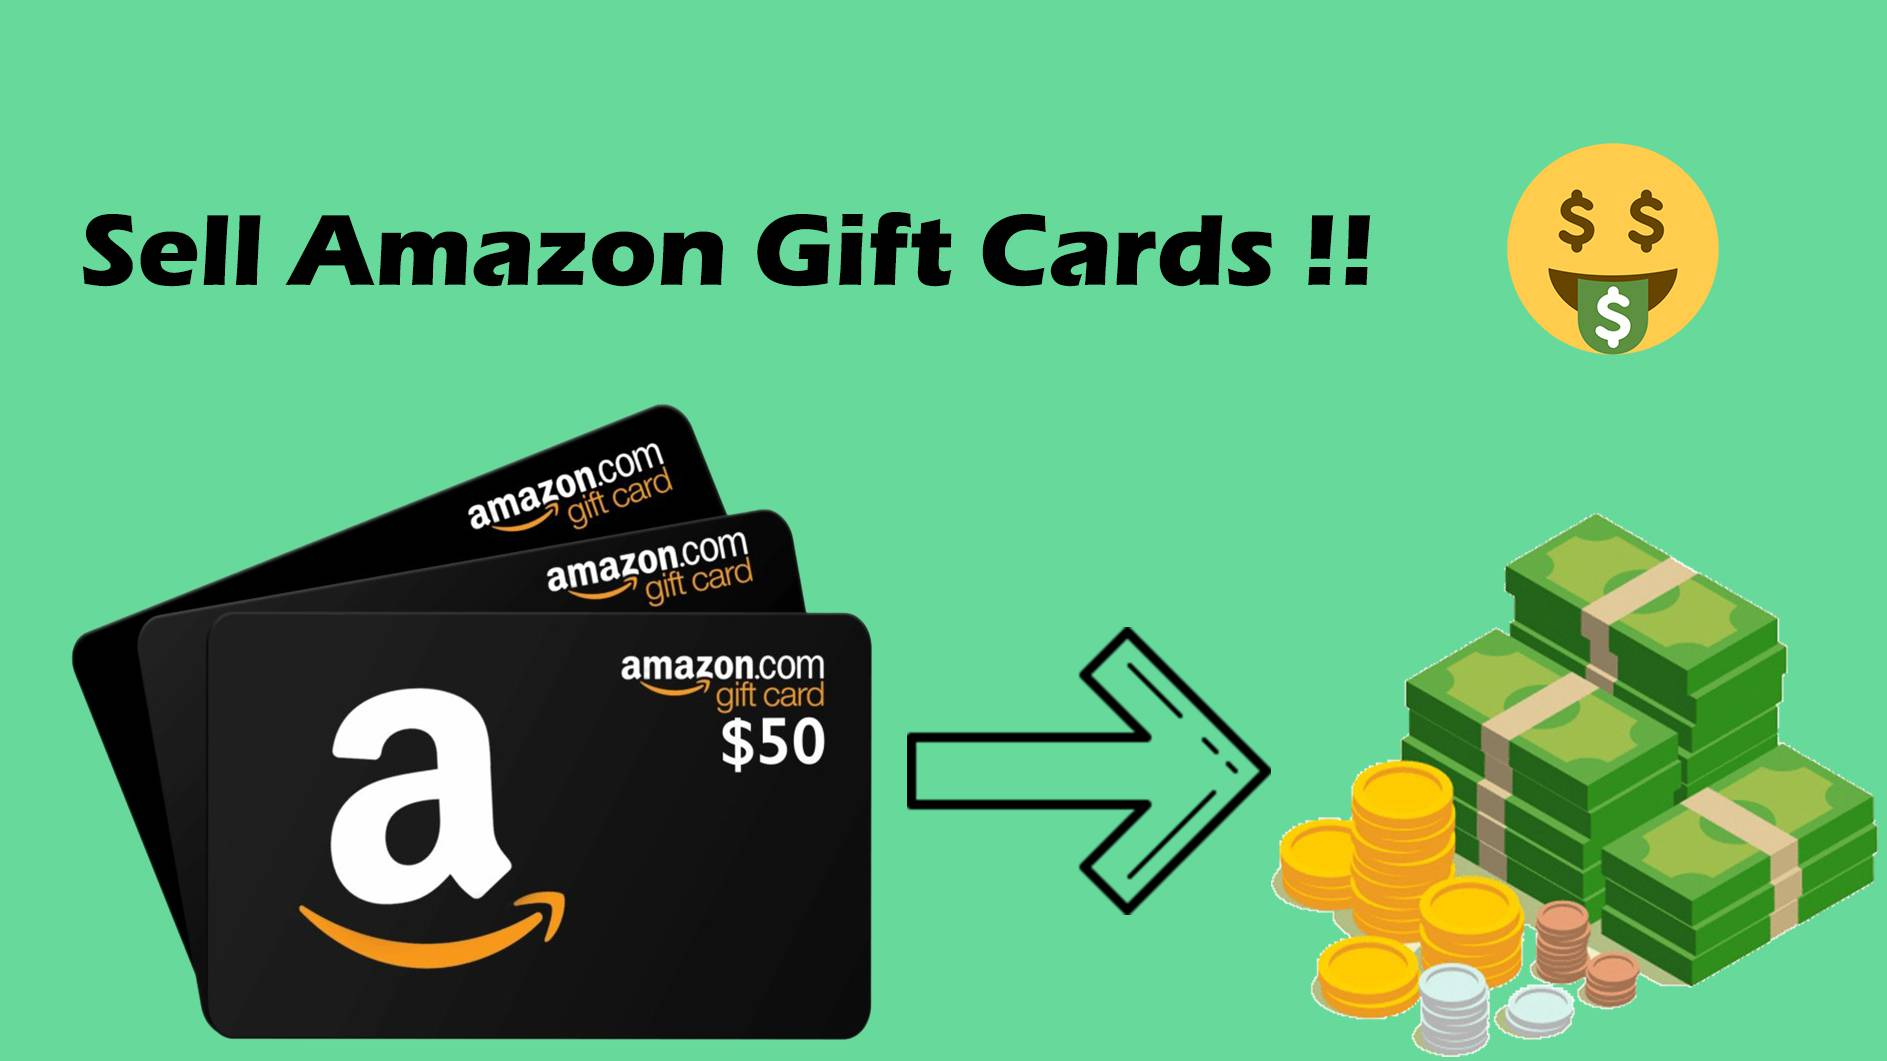 Sell Amazon Gift Cards